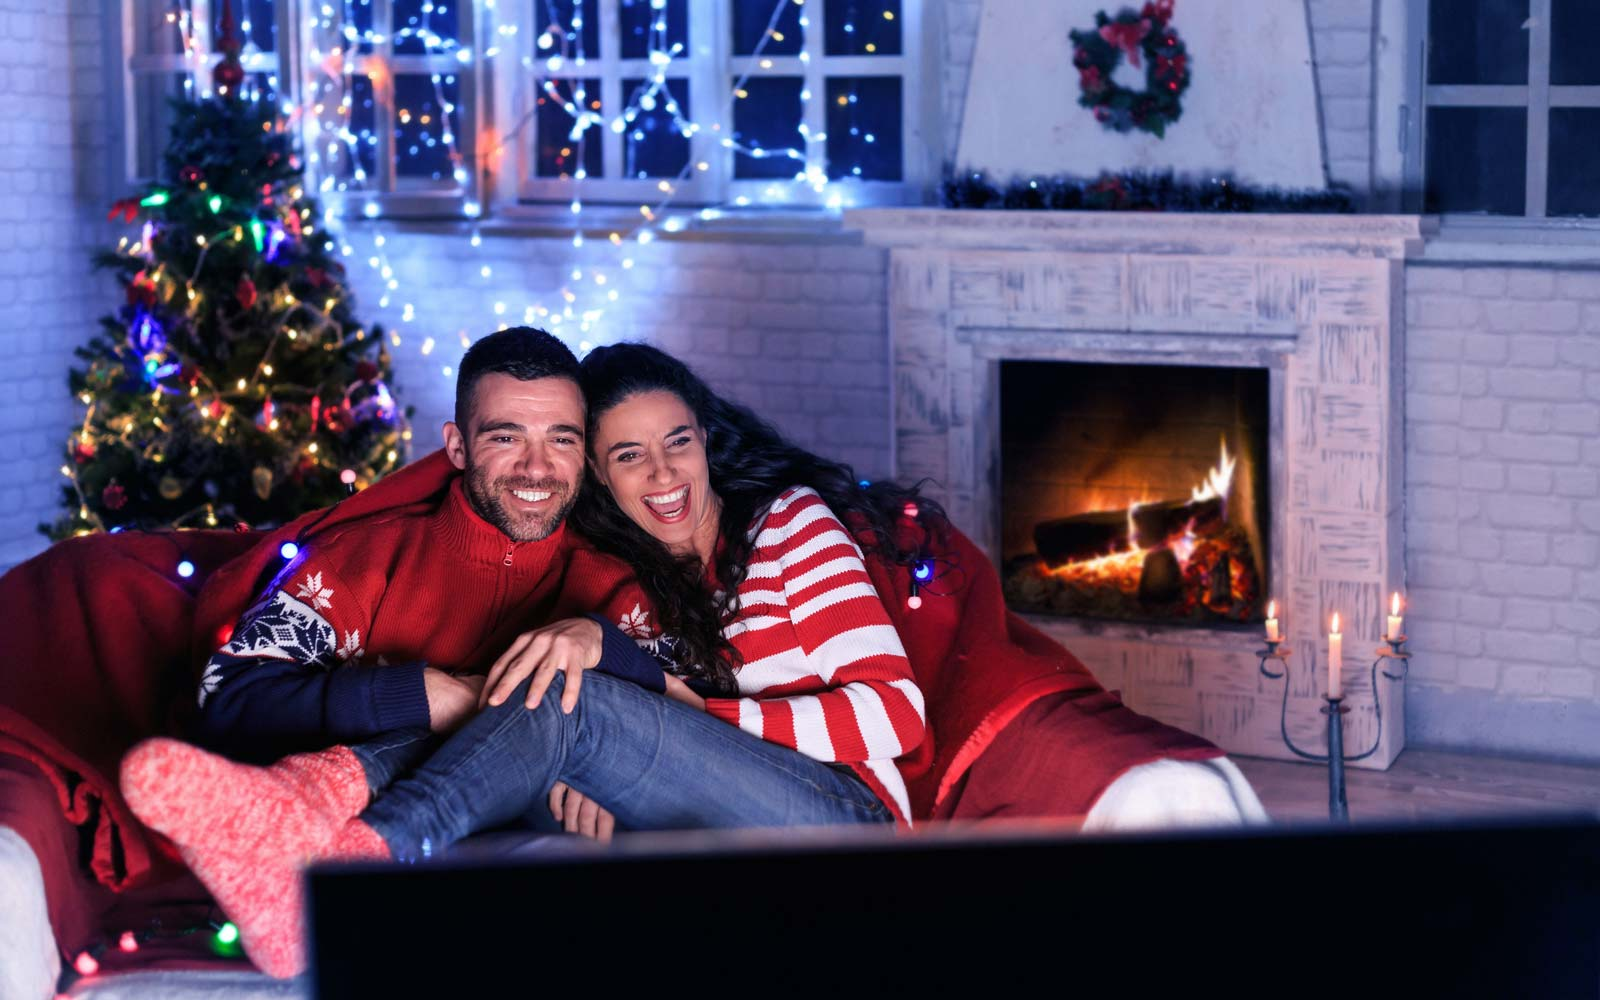 Here's the Real Reason Those Cheesy Hallmark Christmas Movies Are so Irresistible